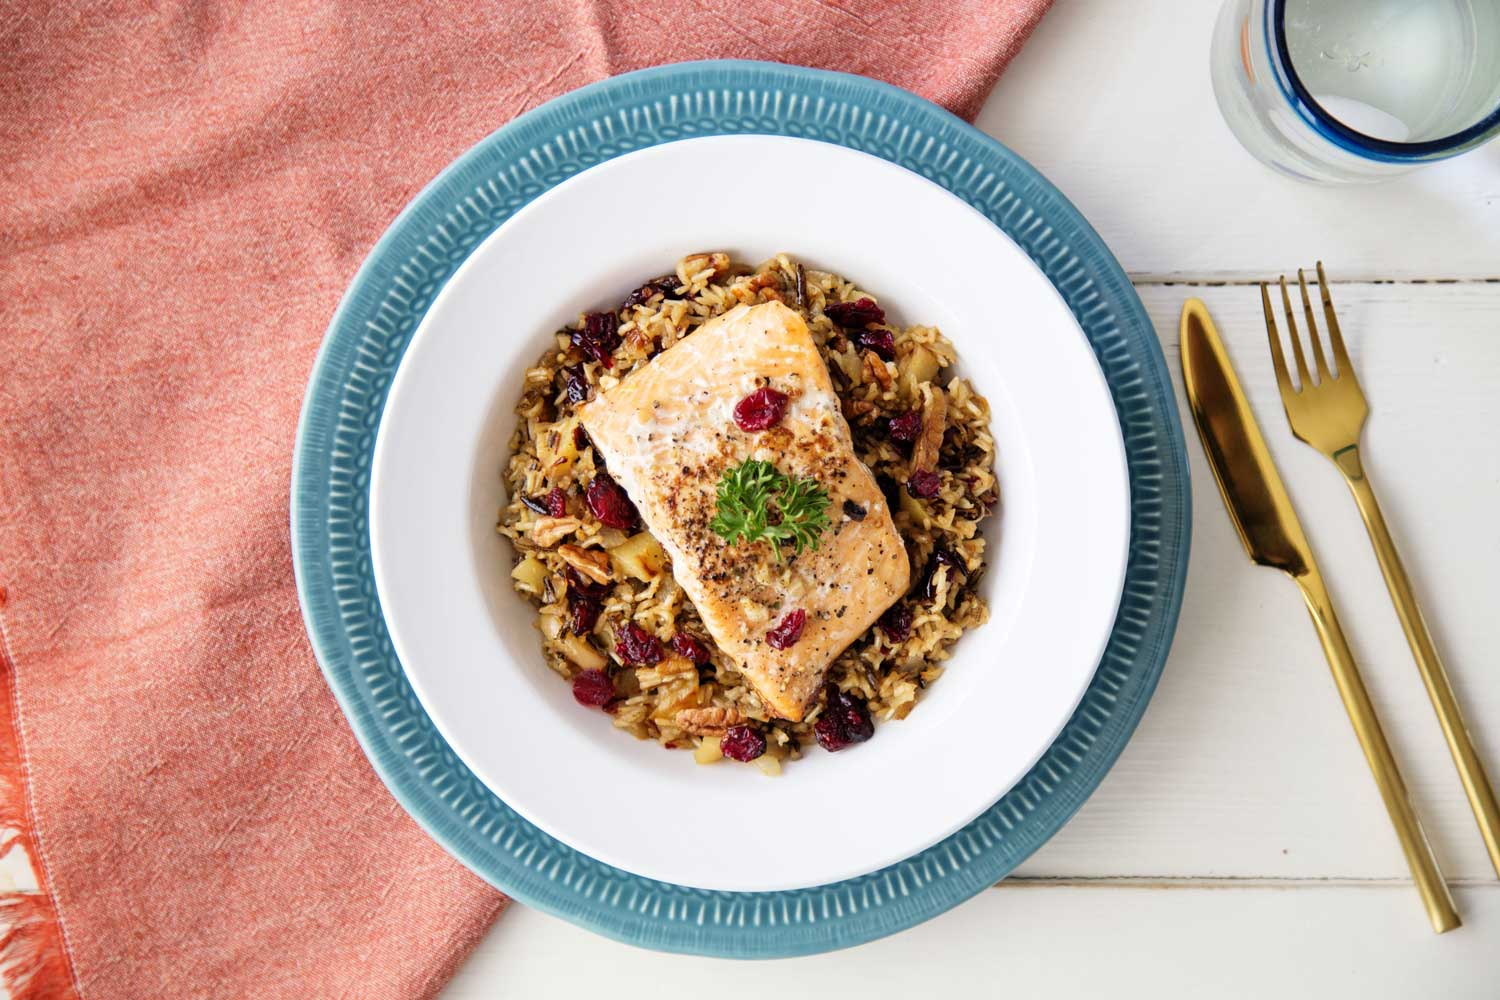 Clean Eating Meal Salmon with Wild Rice